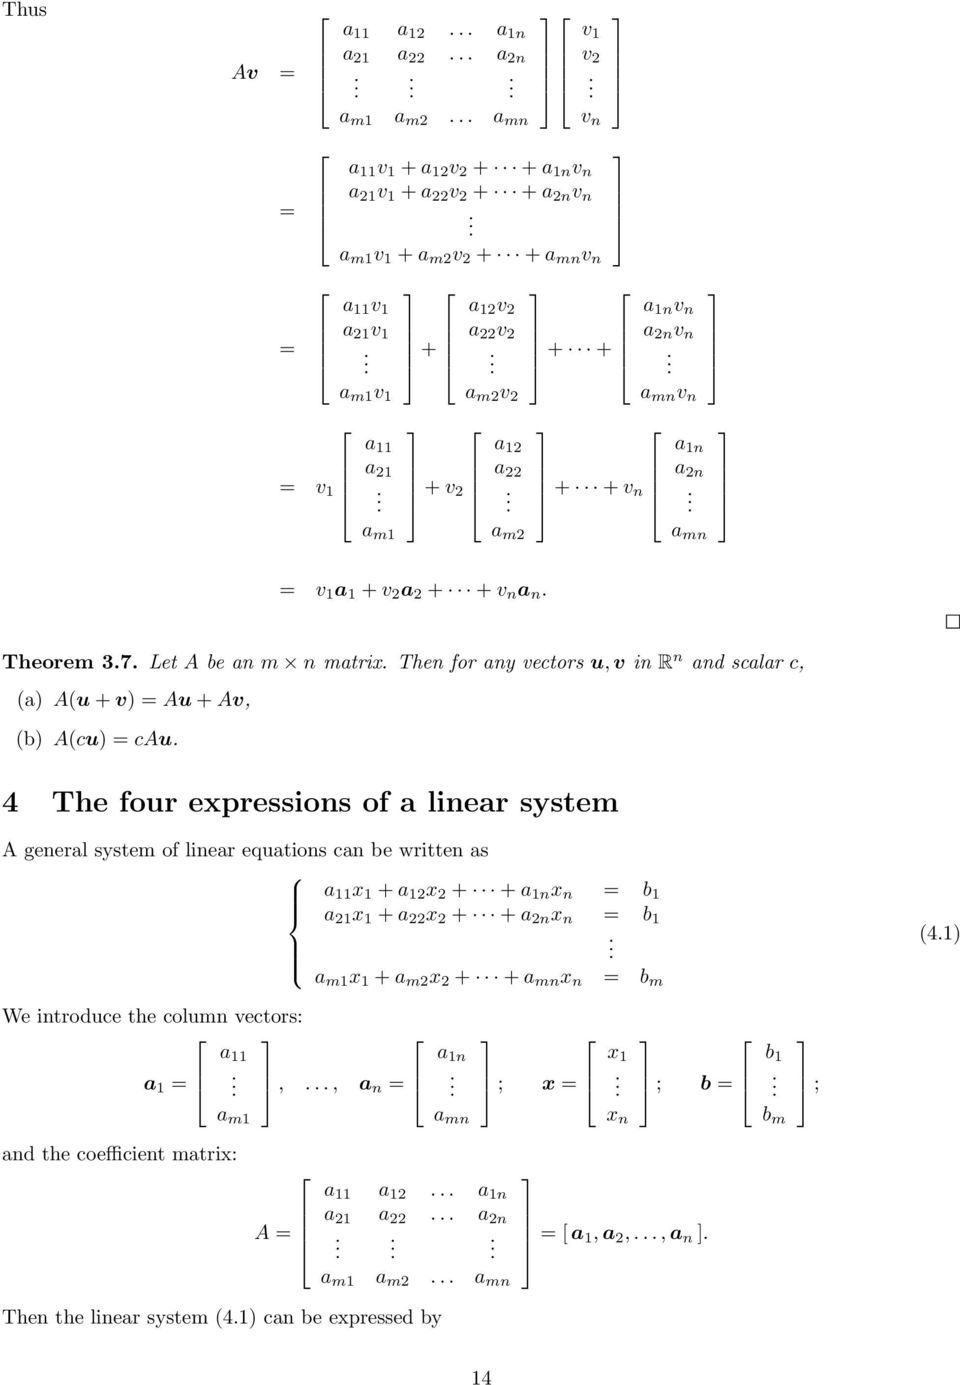 expressions of a linear system A general system of linear equations can be written as a x + a x + + a n x n = b a x + a x + + a n x n = b a m x + a m x + + a mn x n = b m (4) We introduce the